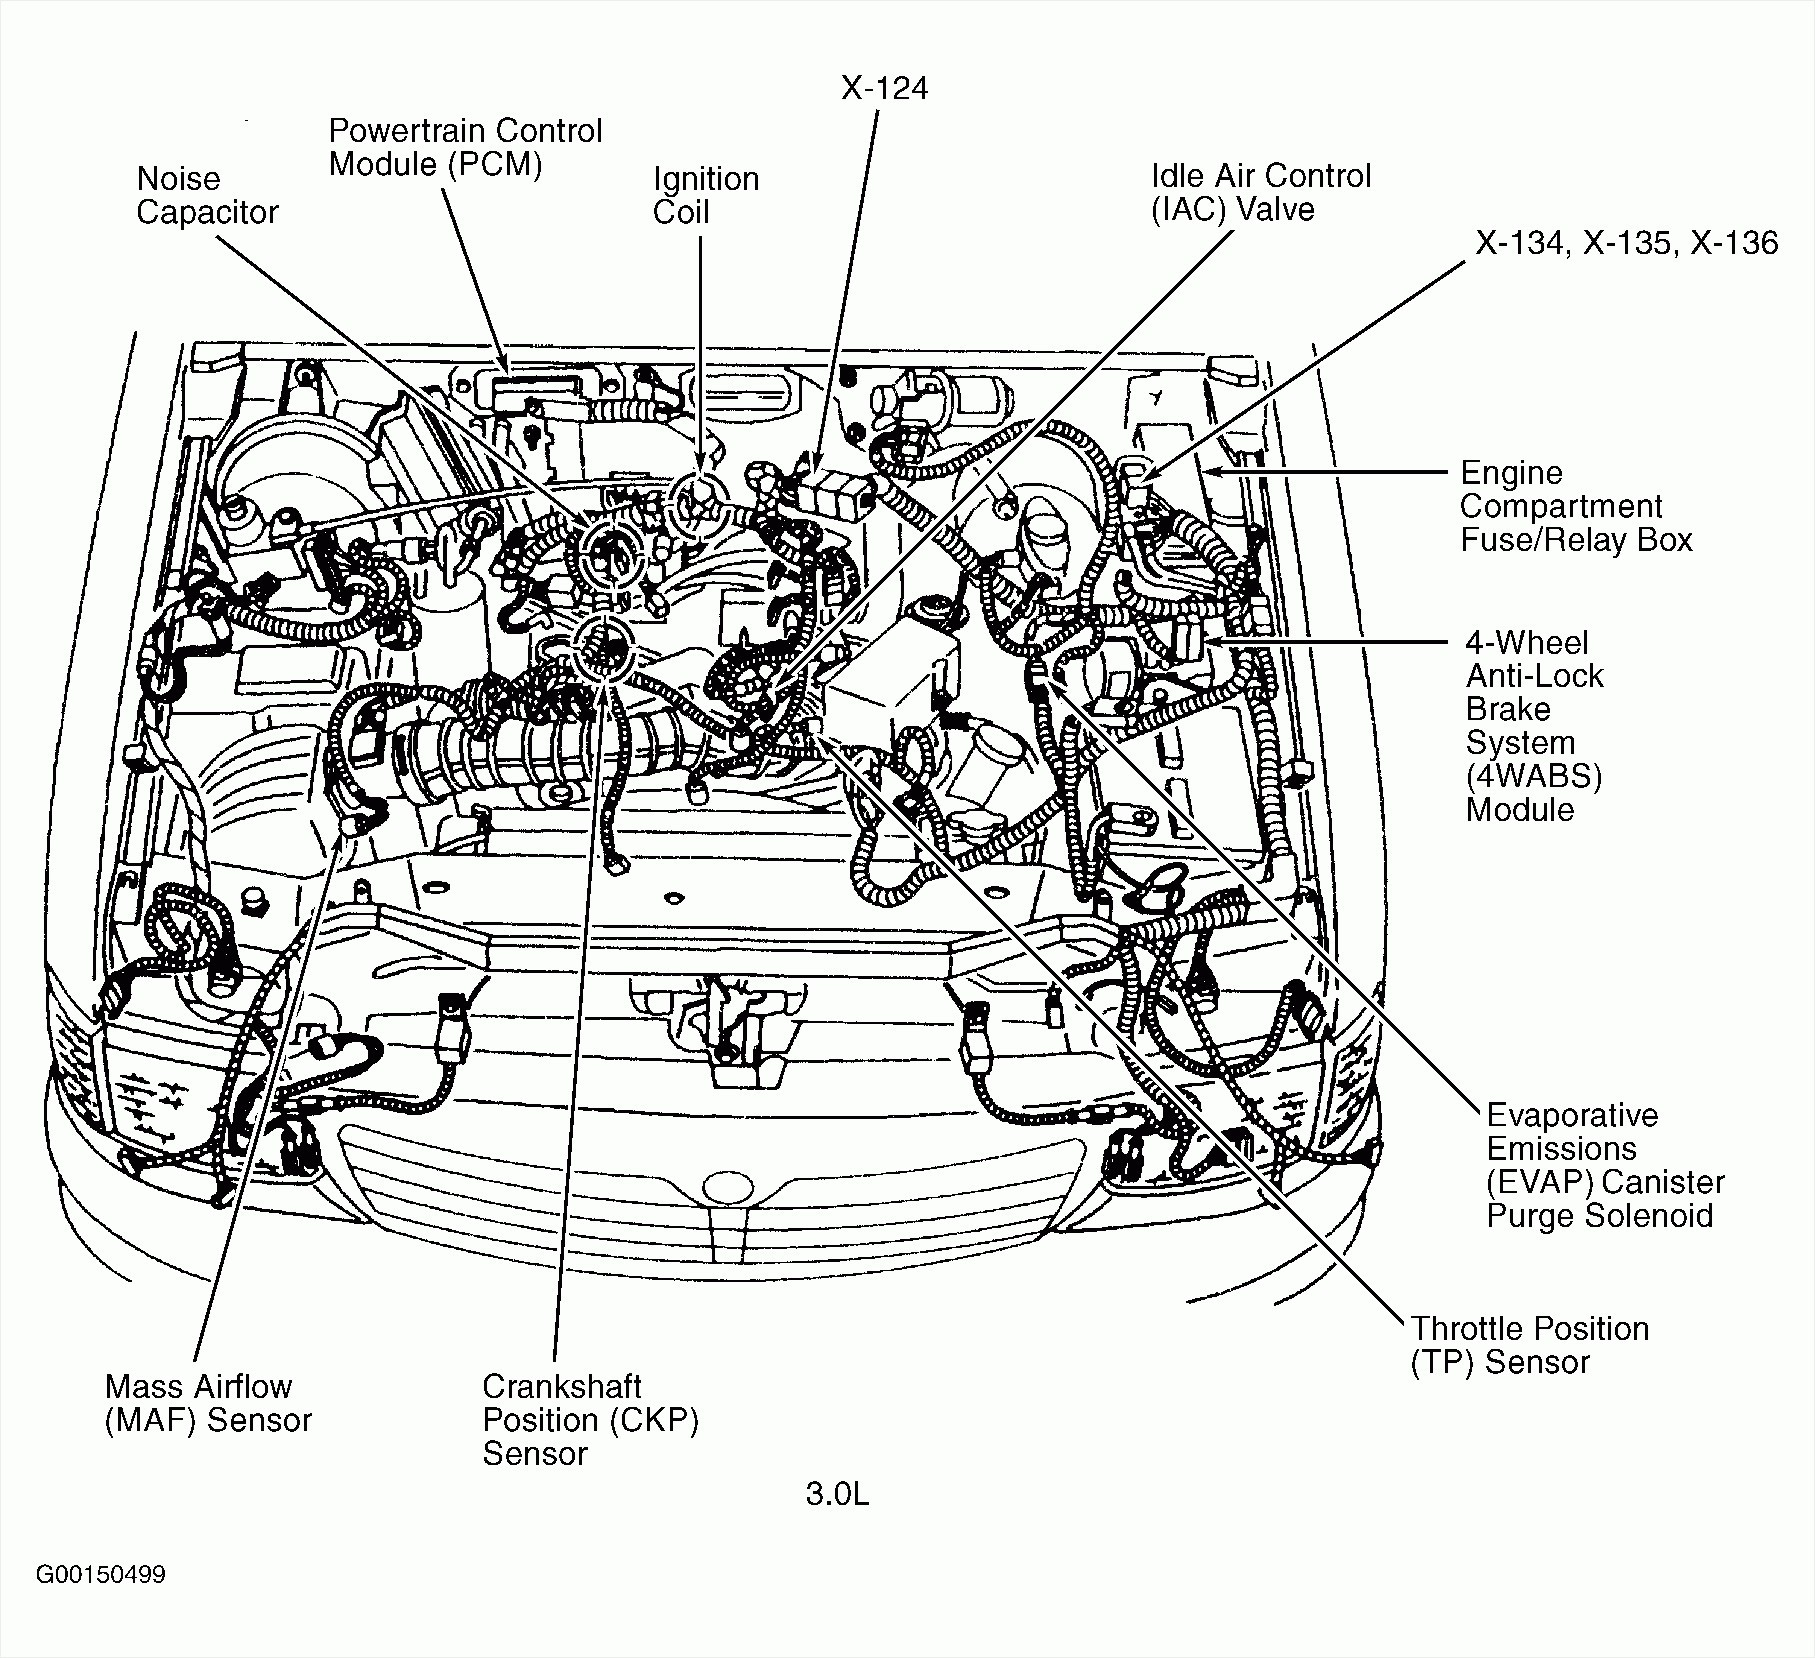 hight resolution of buick 3800 engine diagram wiring diagram page gm 3800 v6 engine diagram 3800 v6 engine diagram